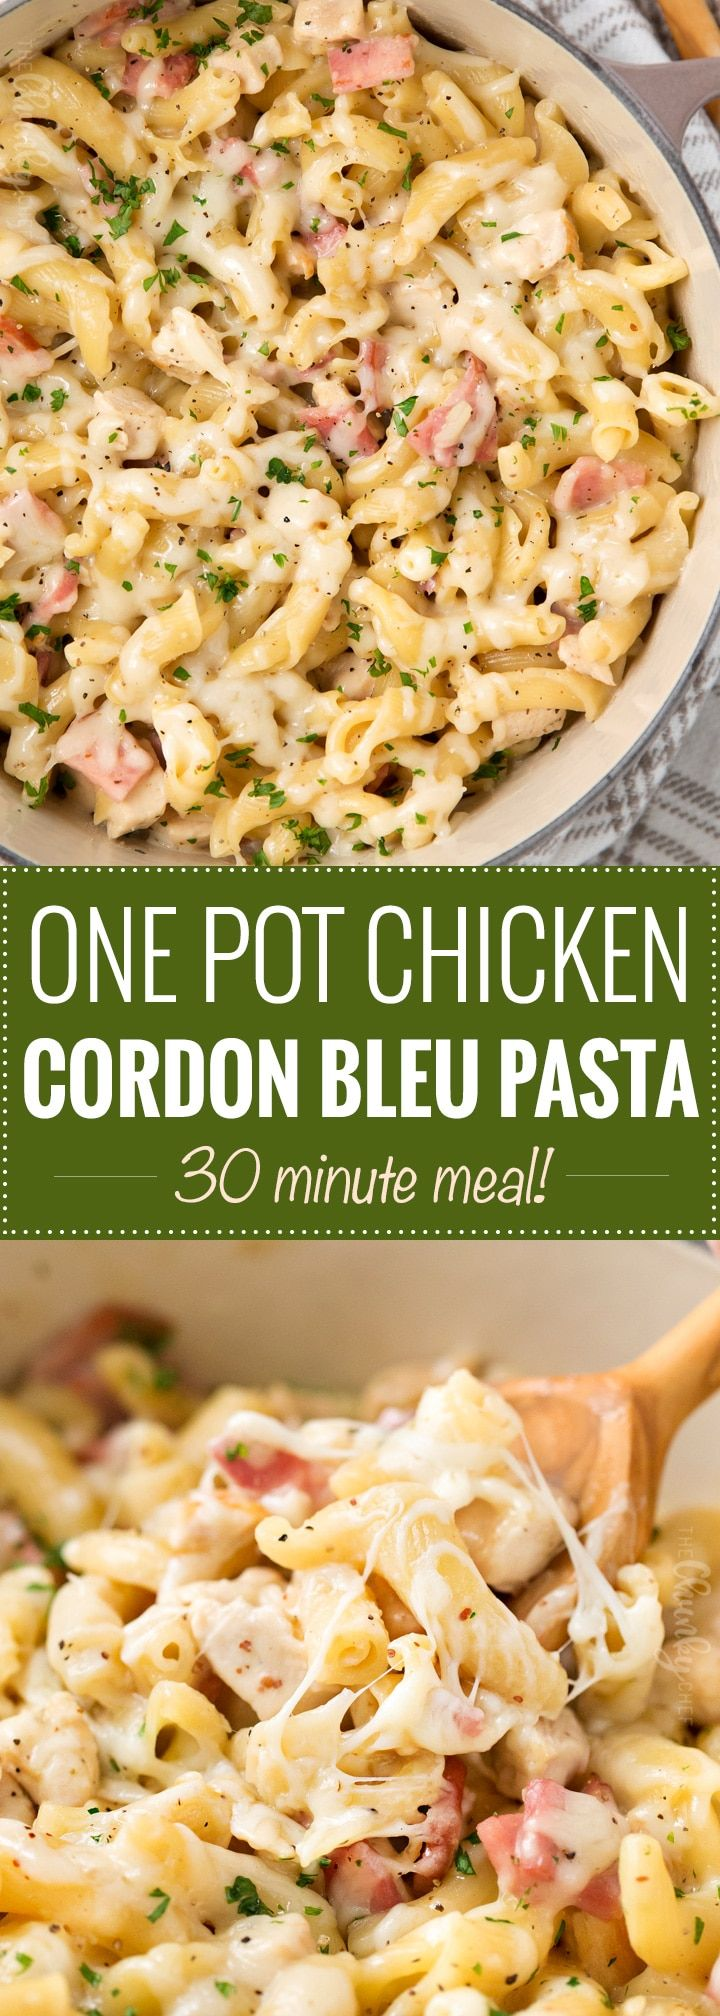 One Pot Creamy Chicken Cordon Bleu Pasta   Classic chicken cordon bleu flavors are combined with ultra creamy pasta in this one pot, 30 minute weeknight dinner recipe! The pasta cooks right in with everything else... no separate pot to wash!   https://thechunkychef.com   #chickencordonbleu #weeknightdinner #pastarecipe #onepot #onepan #30minutemeal